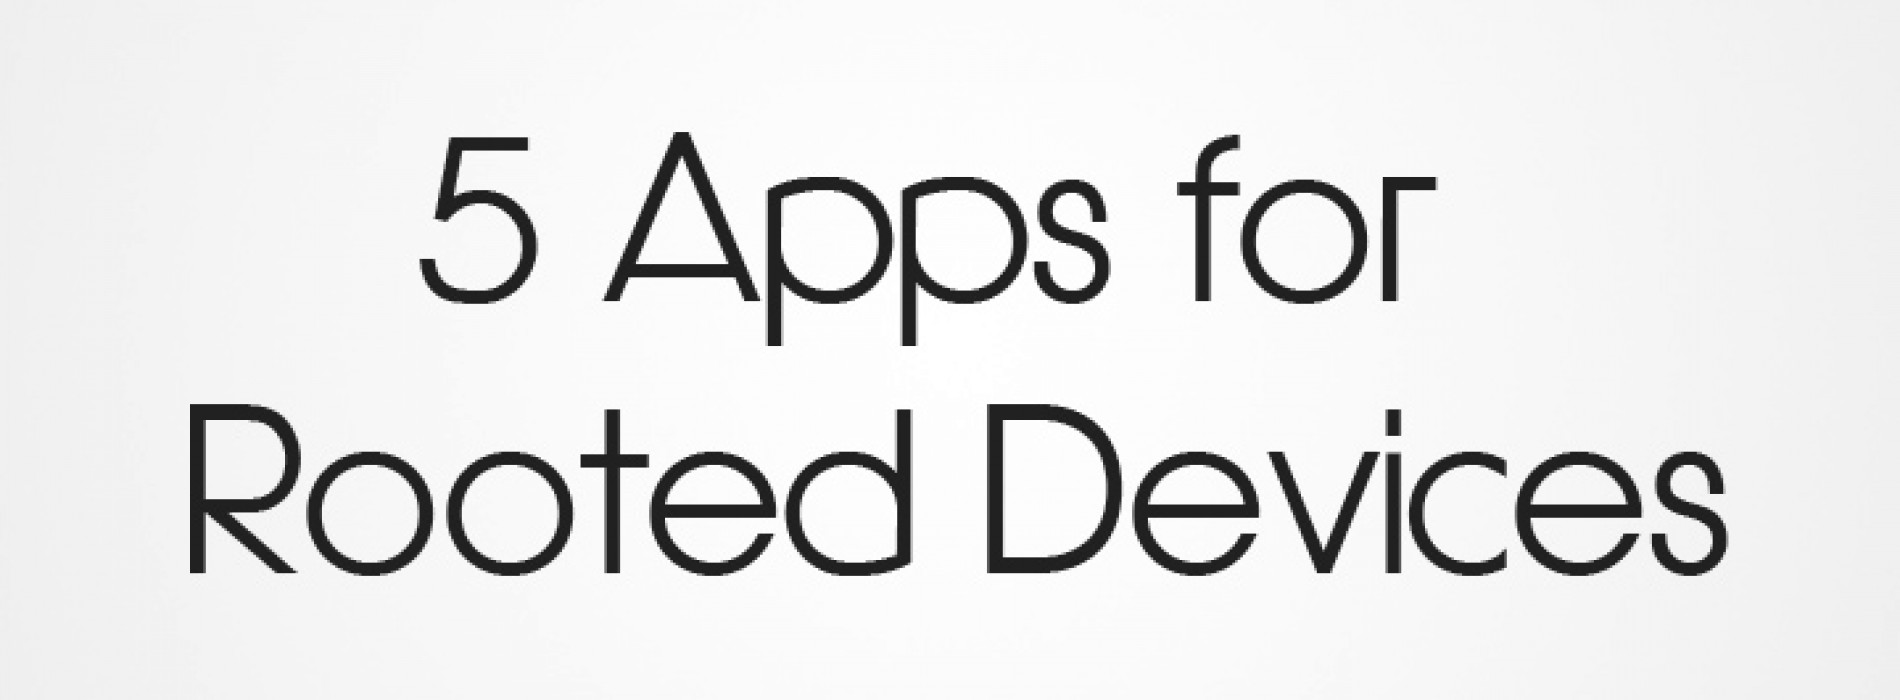 5 Apps for Rooted Devices